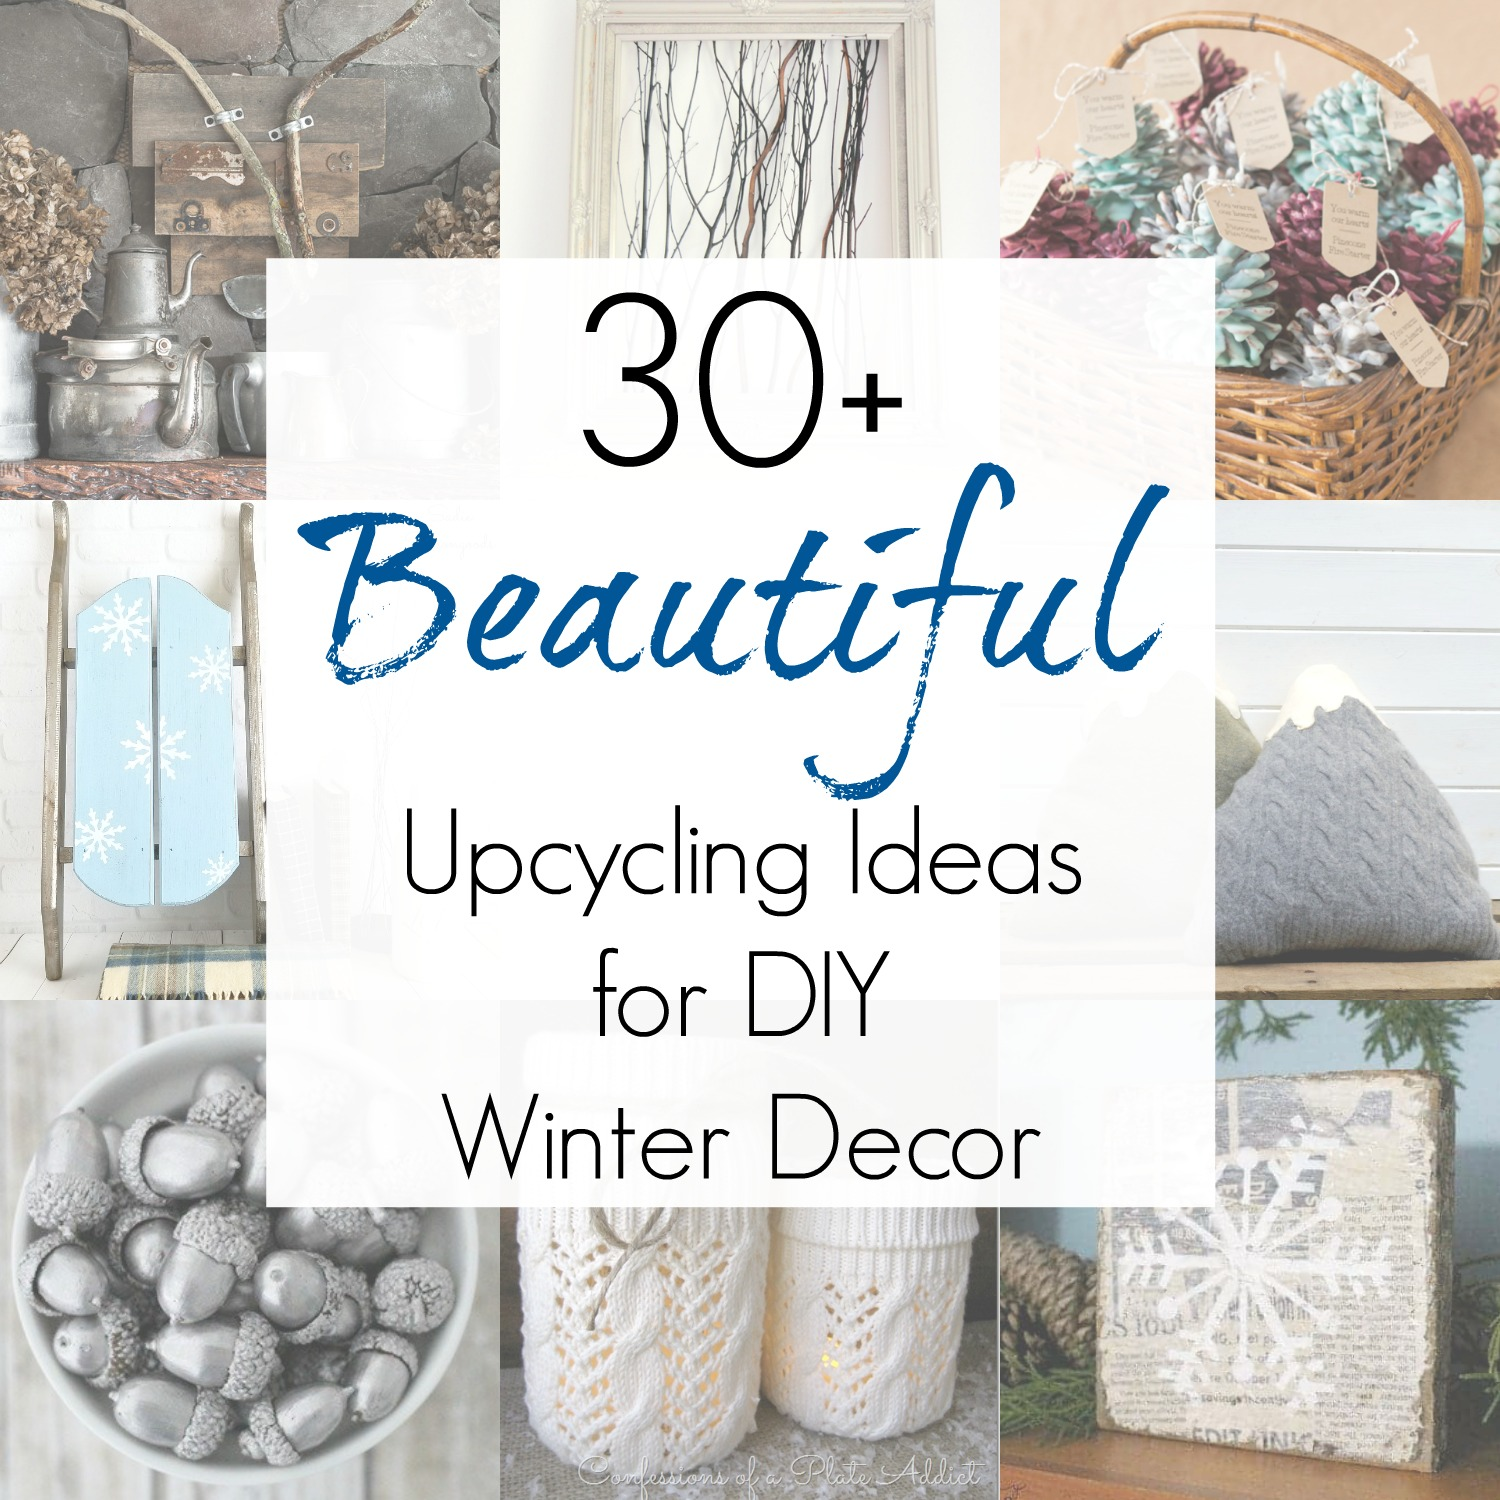 Repurposed projects and upcycling ideas for DIY winter decor and winter wonderland decorations